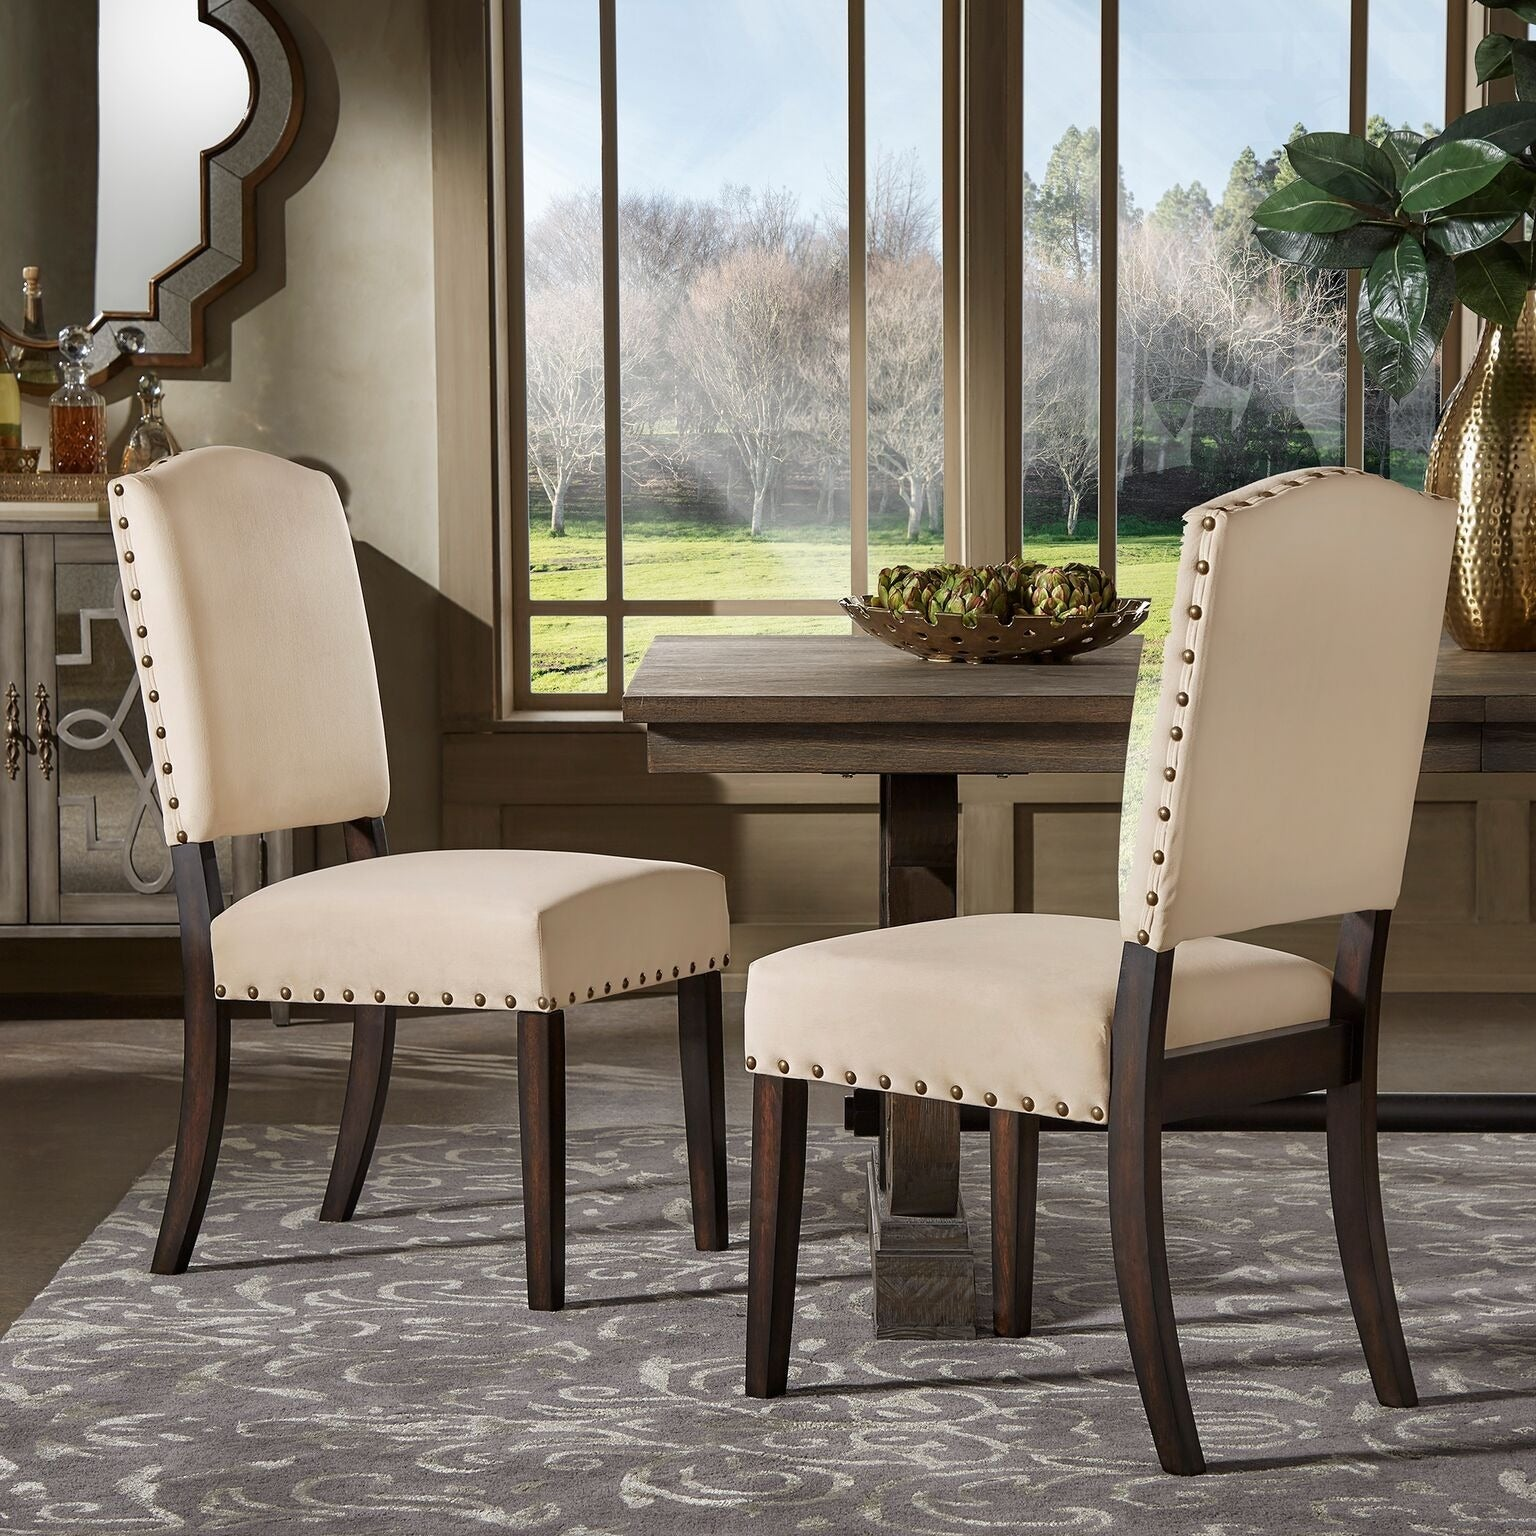 Benchwright II Velvet Nailhead Dining Chairs (Set Of 2) By INSPIRE Q Bold    Free Shipping Today   Overstock.com   22670937